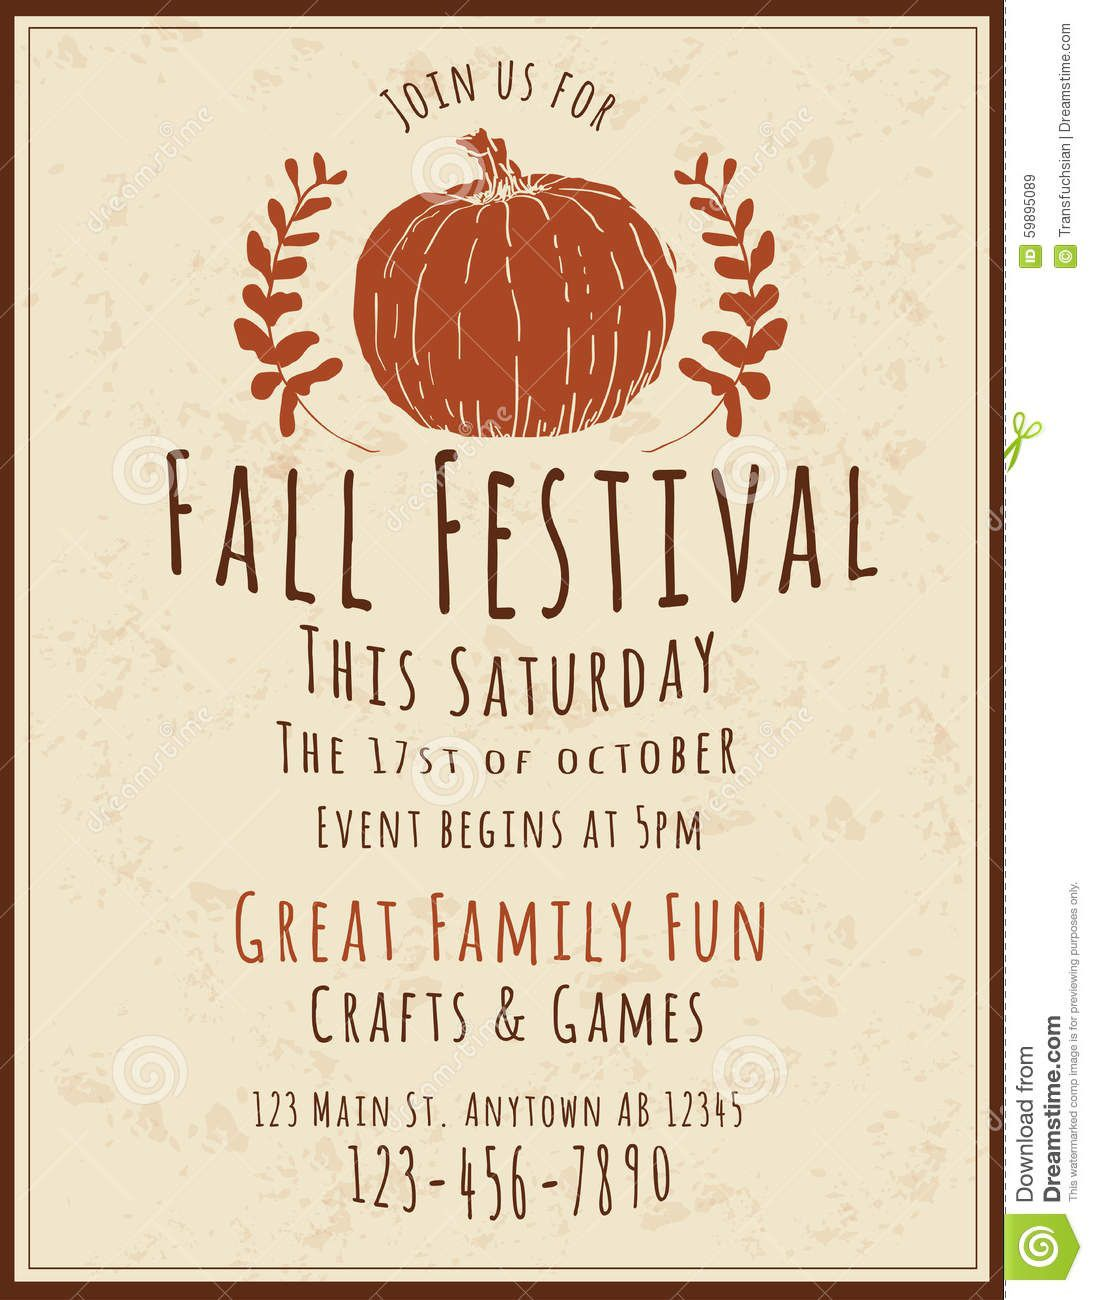 006 Excellent Fall Festival Flyer Template Idea  FreeFull